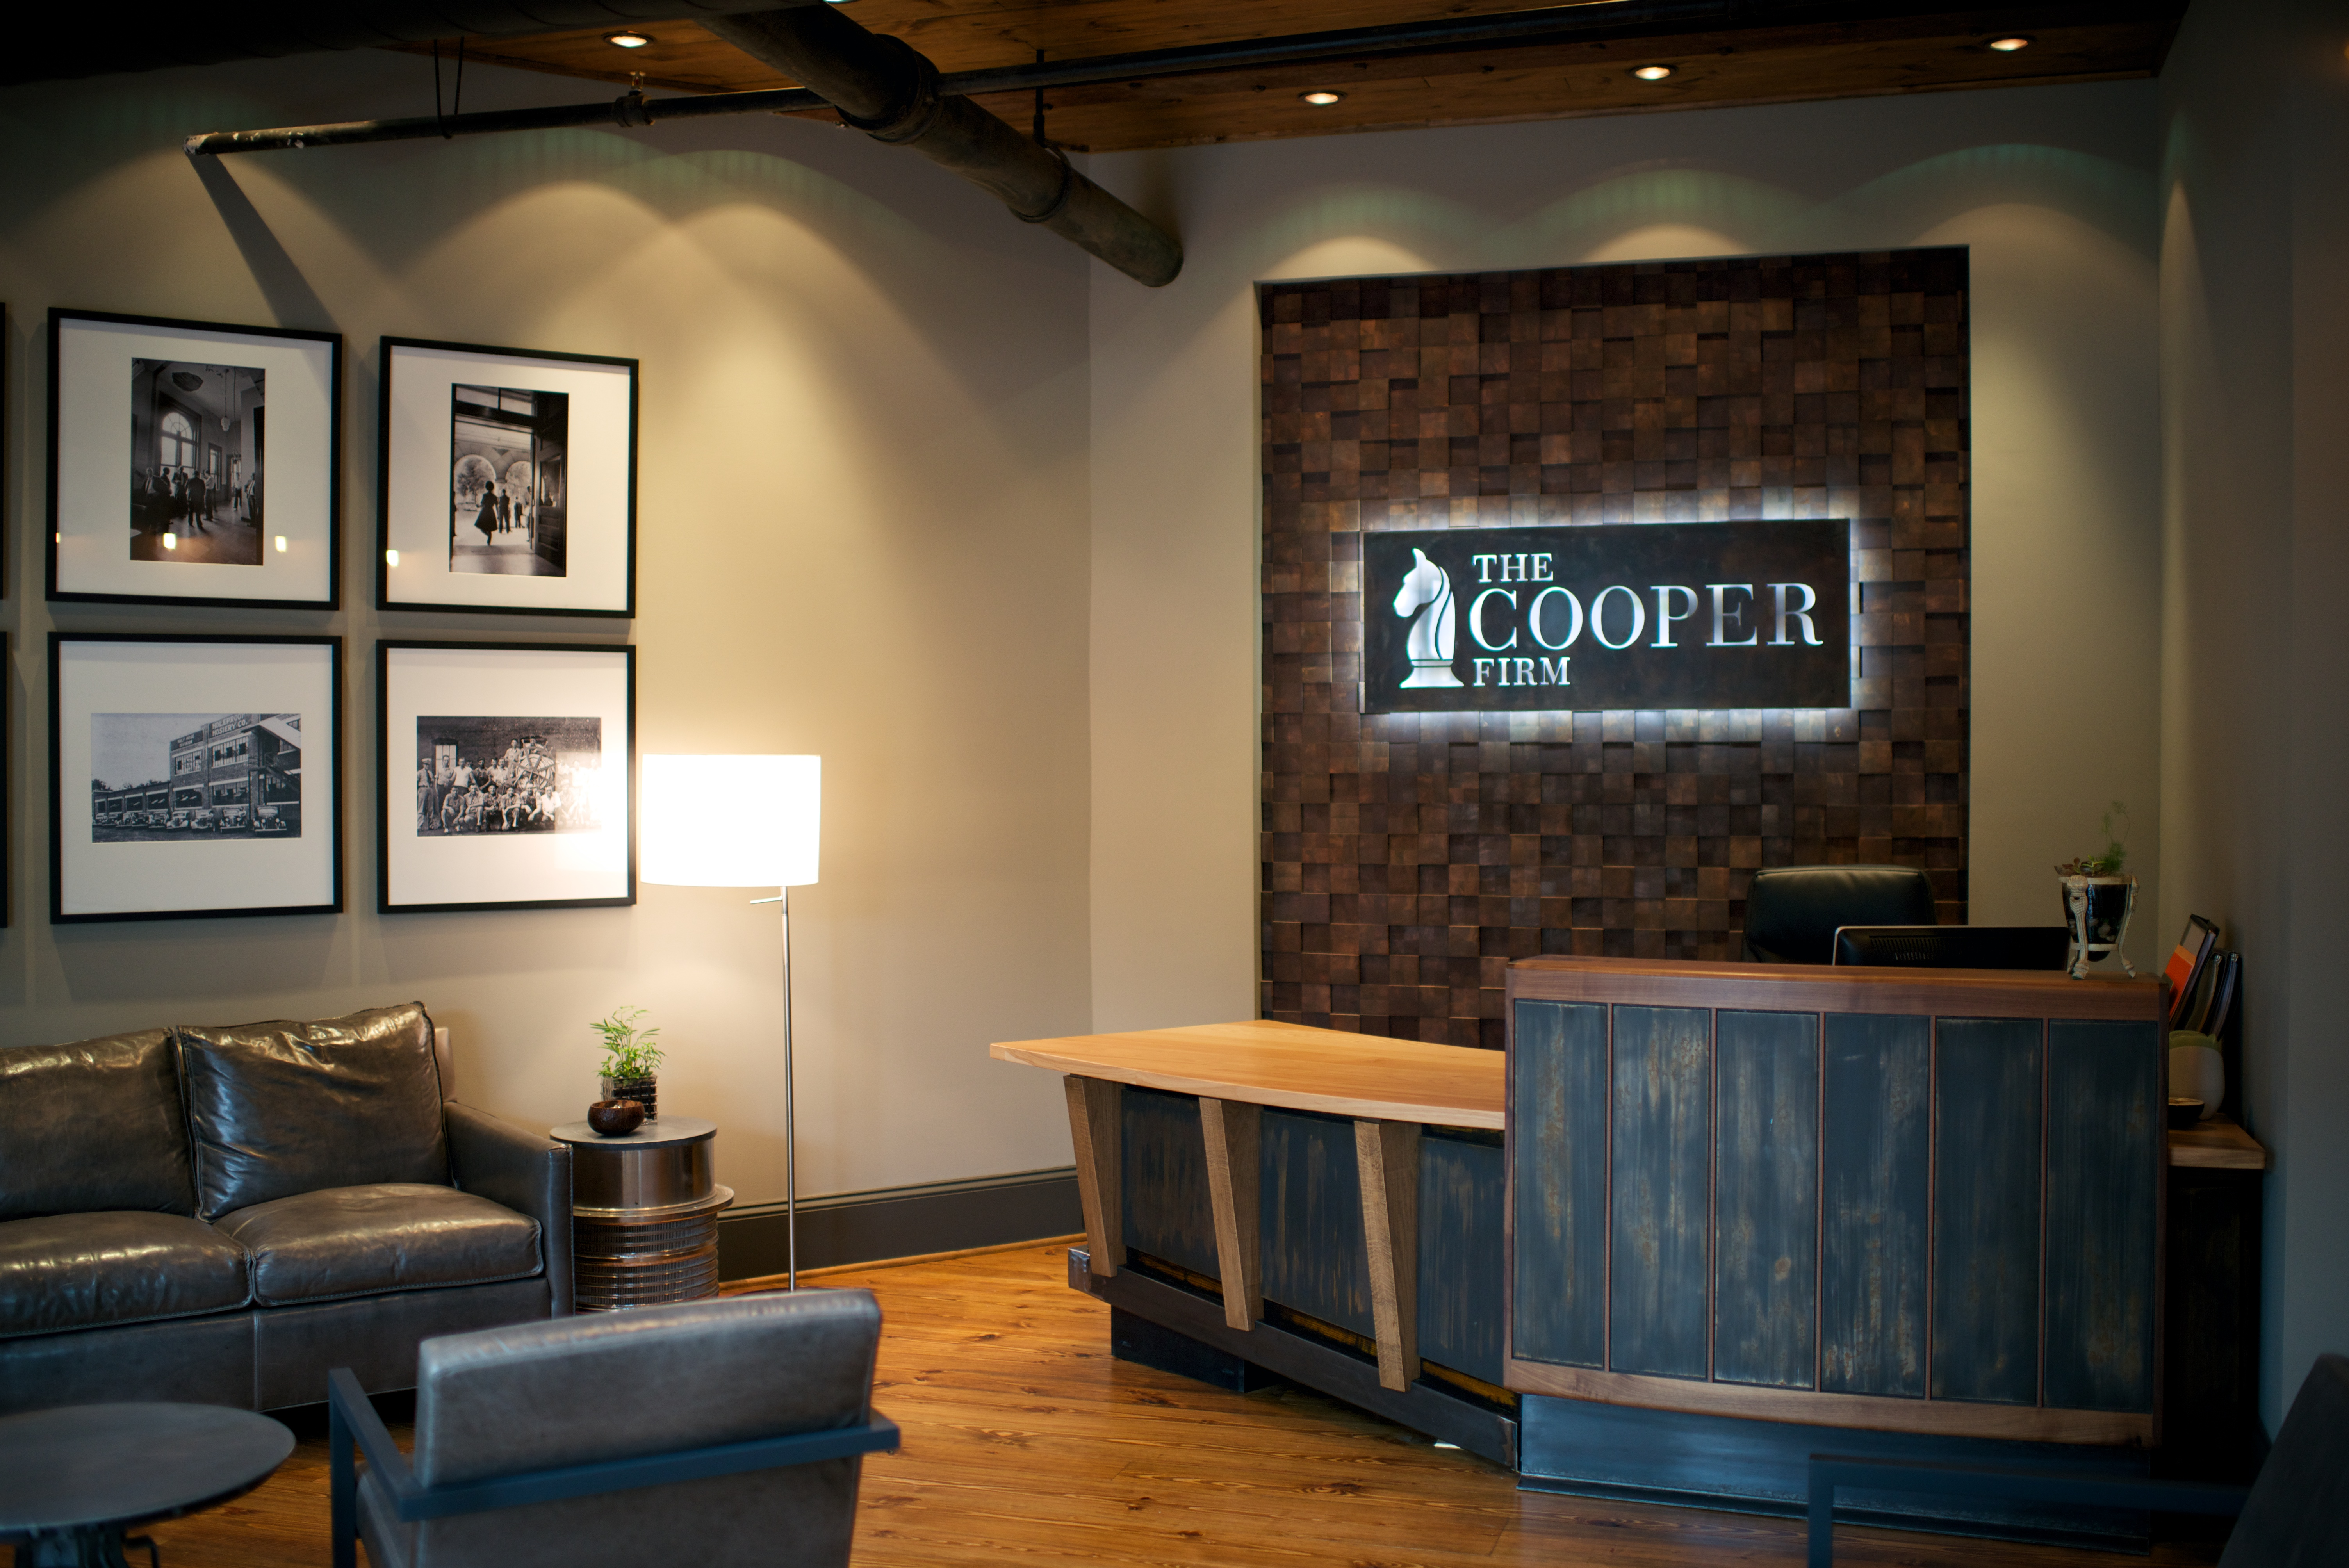 The Cooper Firm S New Office The Cooper Firm The